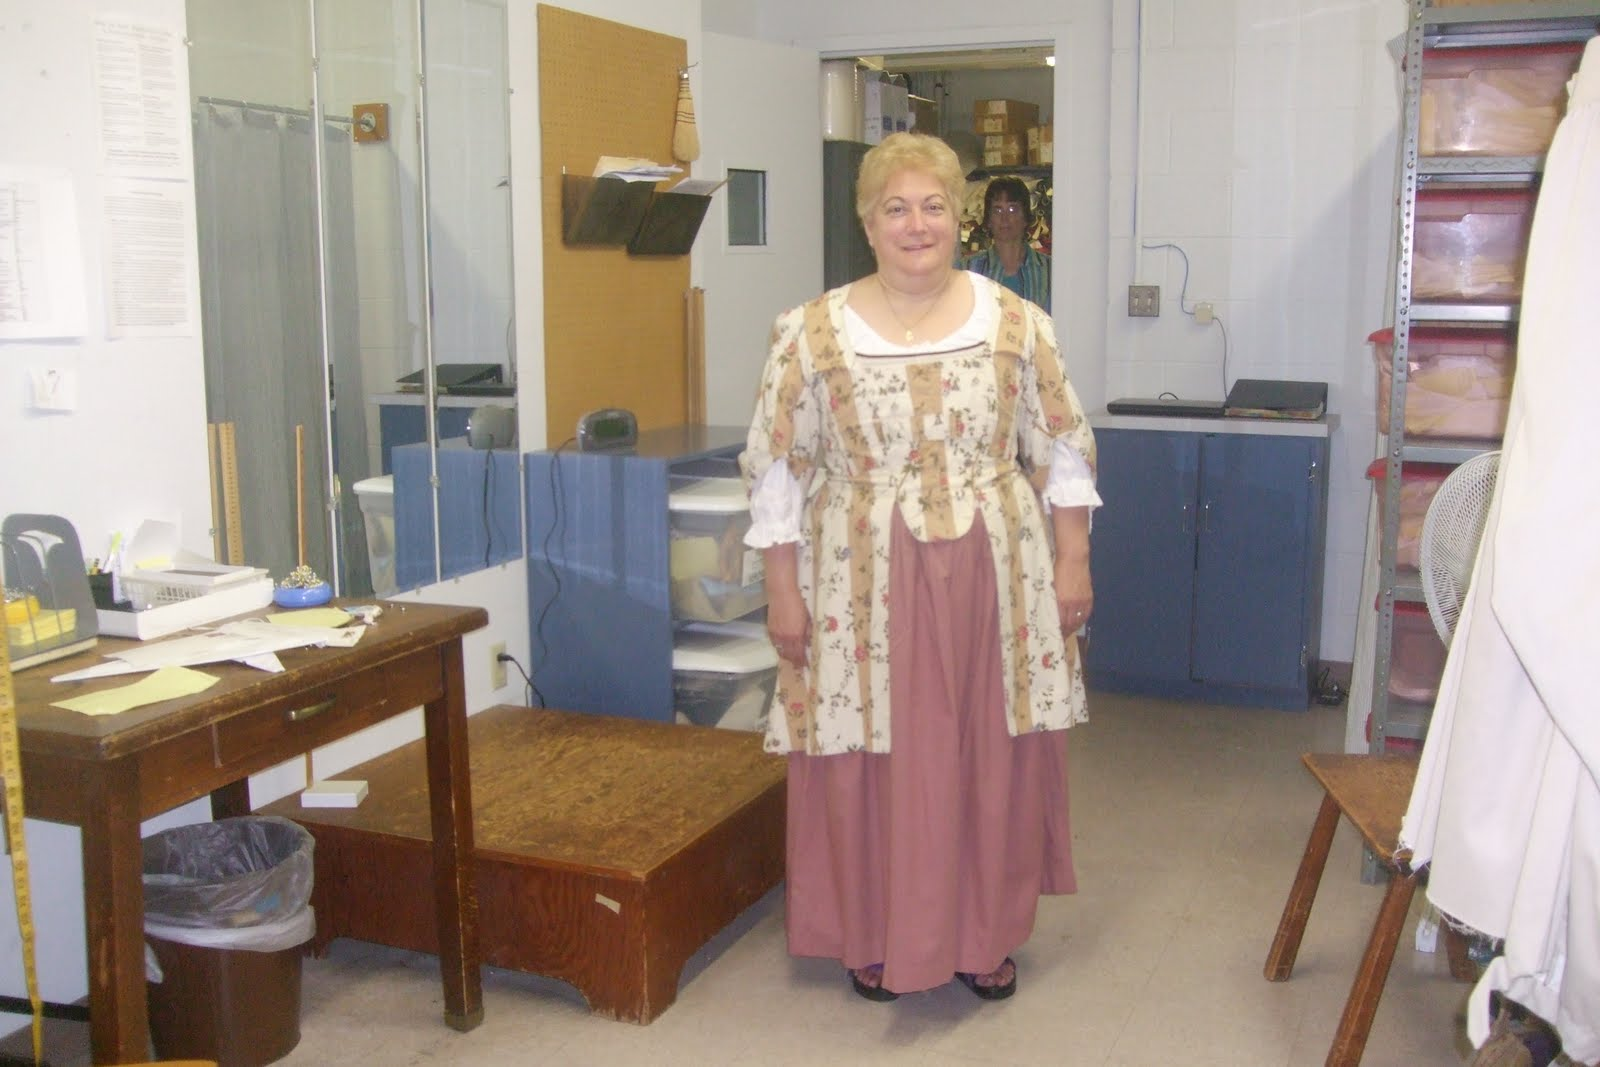 Nancy and Barb joined me as I begin my tour of Colonial Williamsburg with the Costume Design Center. I got a full tour of the various character costumes and ...  sc 1 st  Merleu0027s Whirls & Merleu0027s Whirls: COLONIAL WILLIAMSBURG: THE COSTUMES